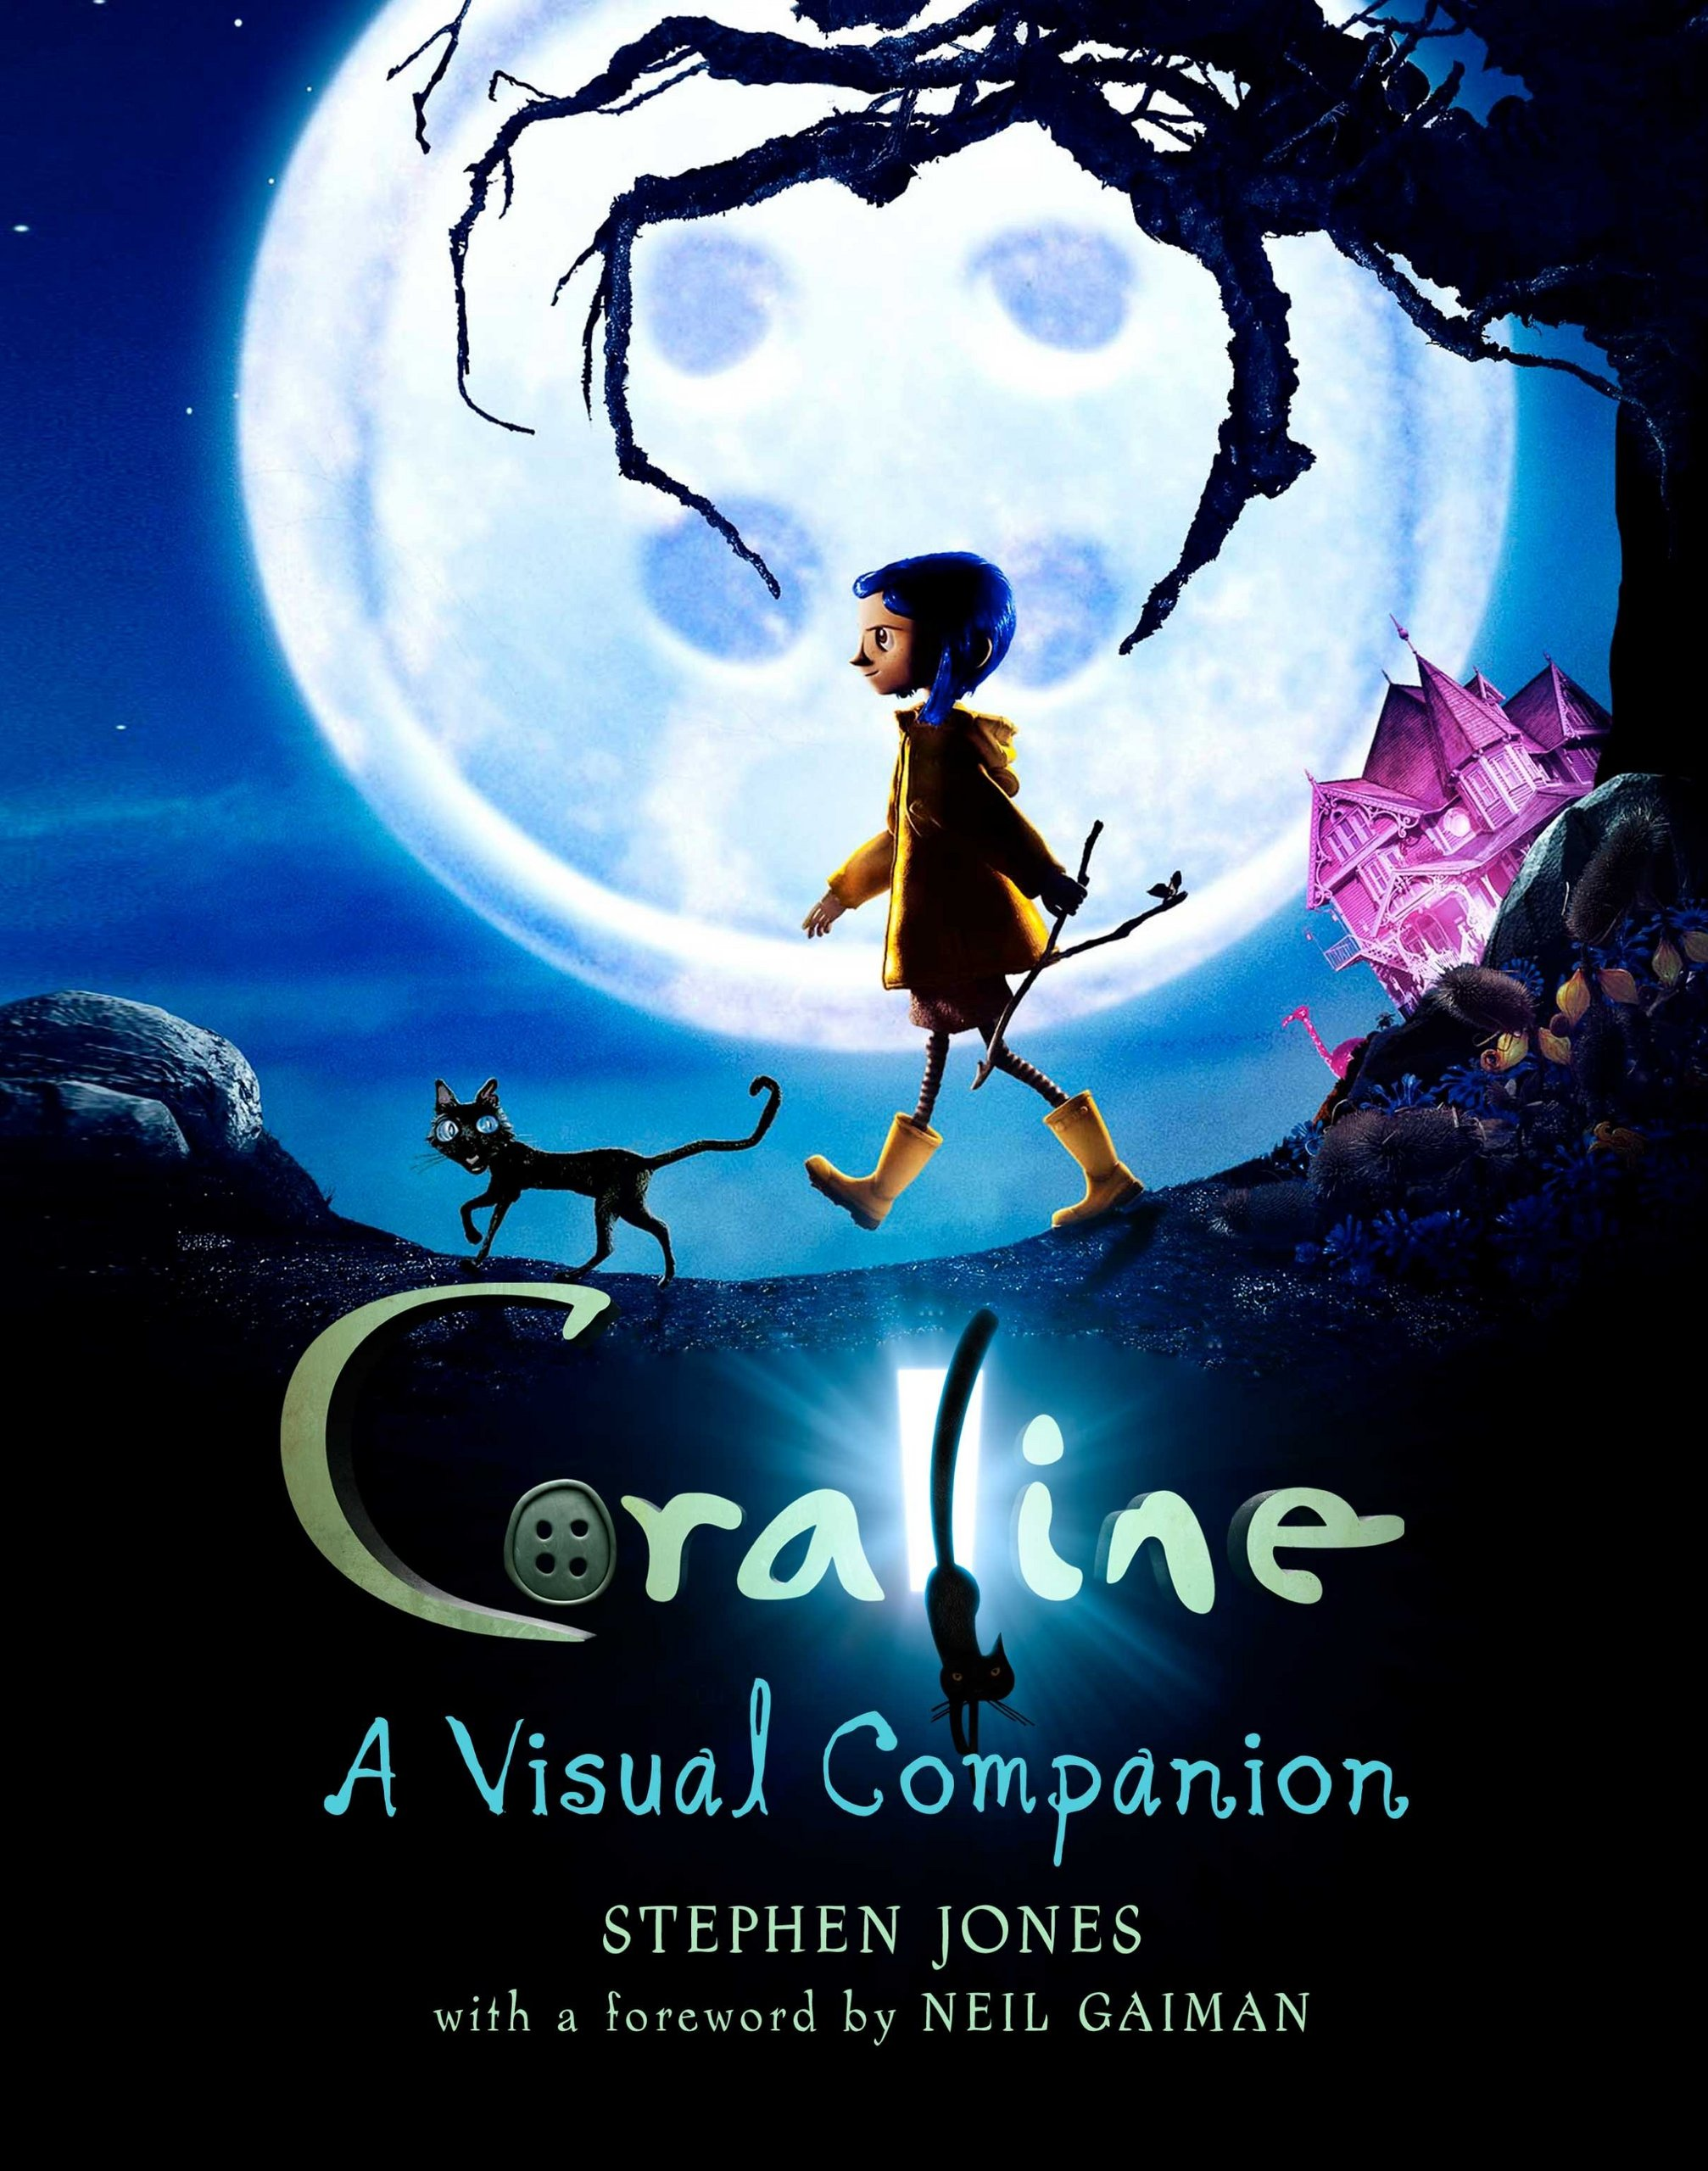 Coraline Looking For The Ghost Eyes In The Snow Coraline Jones Photo 23328709 Fanpop